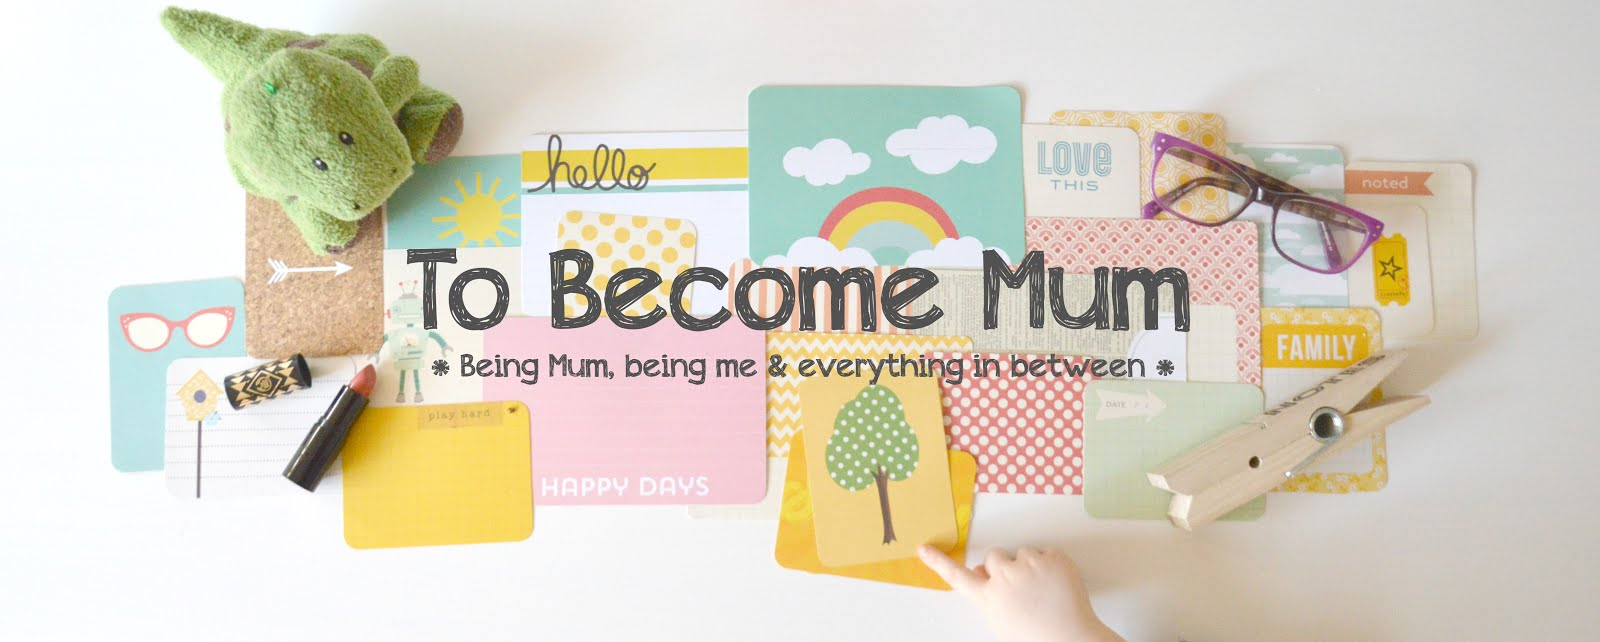 To Become Mum